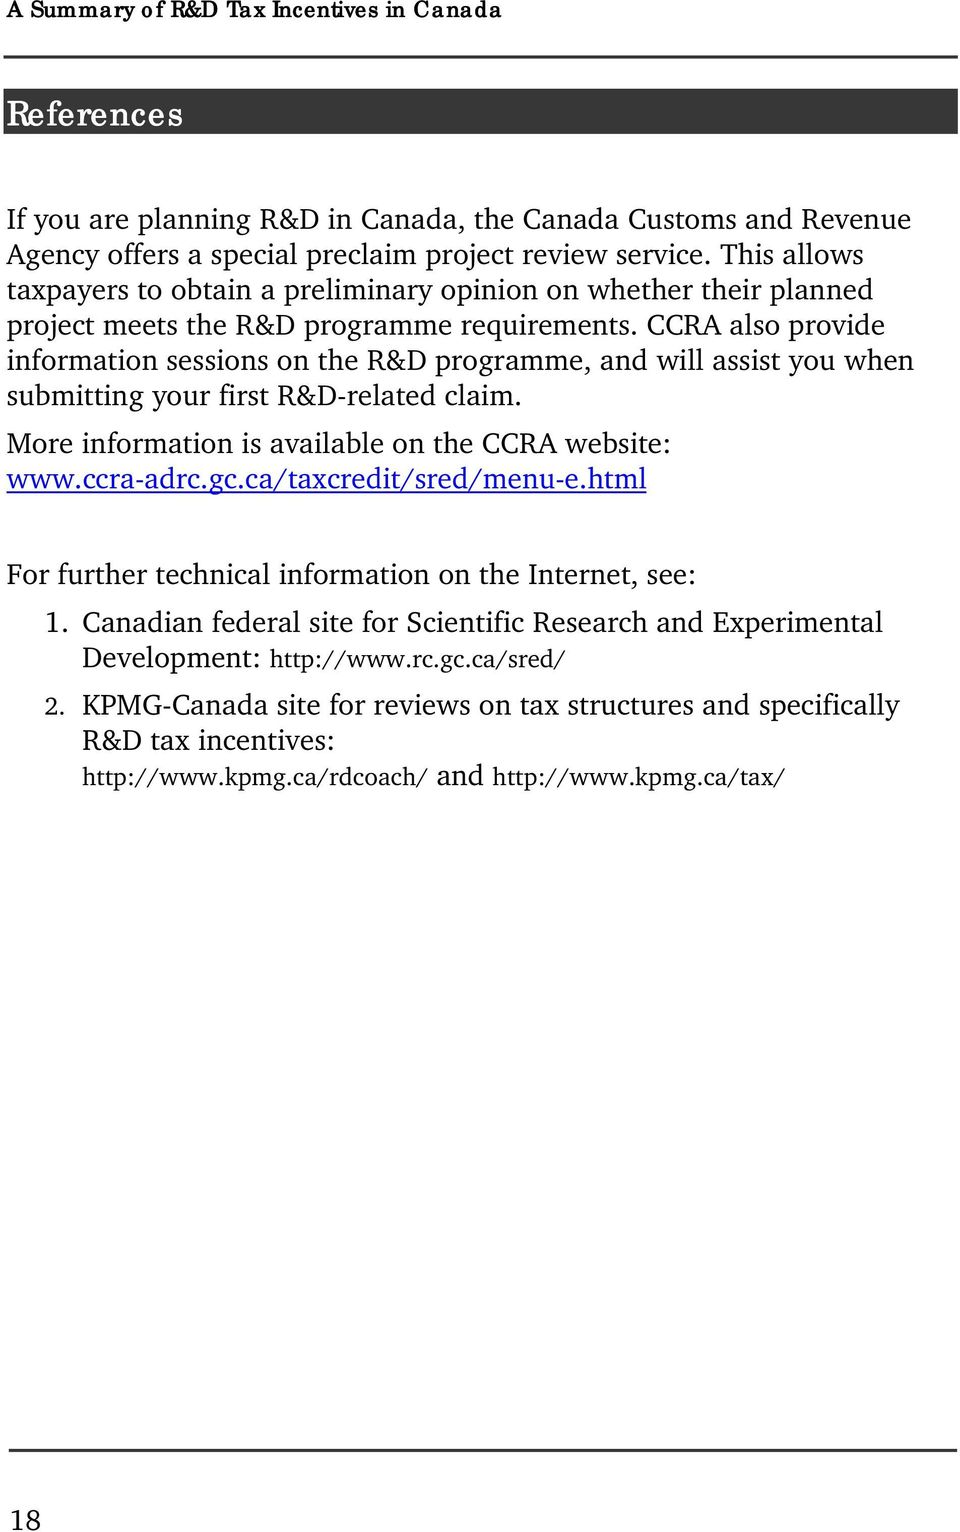 CCRA also provide information sessions on the R&D programme, and will assist you when submitting your first R&D-related claim. More information is available on the CCRA website: www.ccra-adrc.gc.